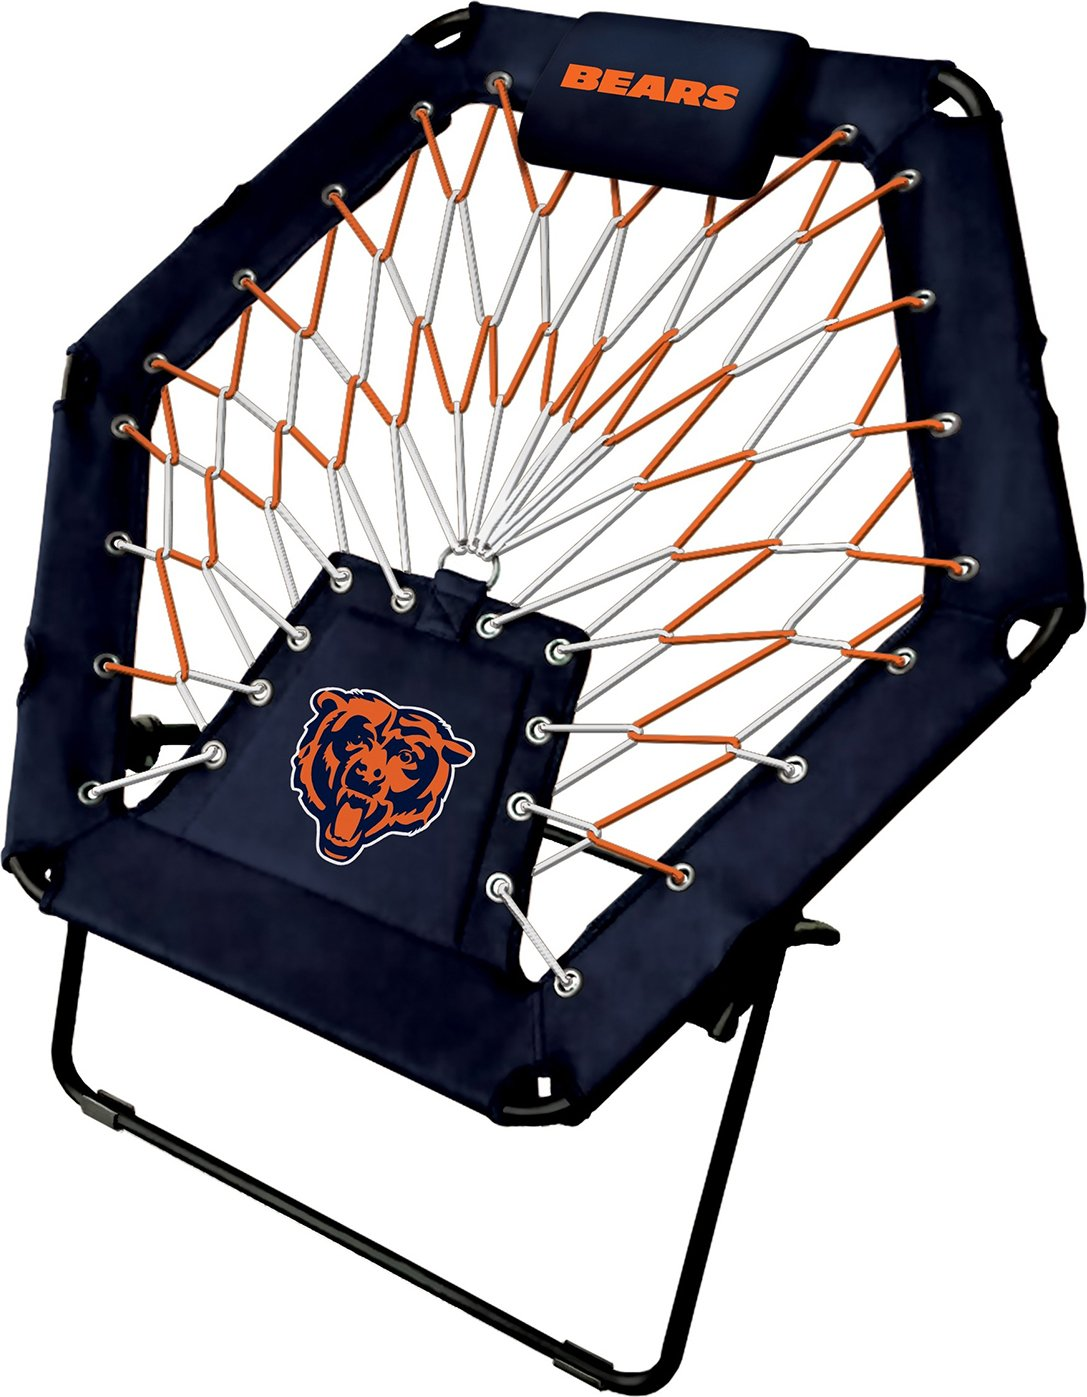 Imperial Officially Licensed NFL Furniture: Premium Bungee Chair, Chicago Bears by Imperial